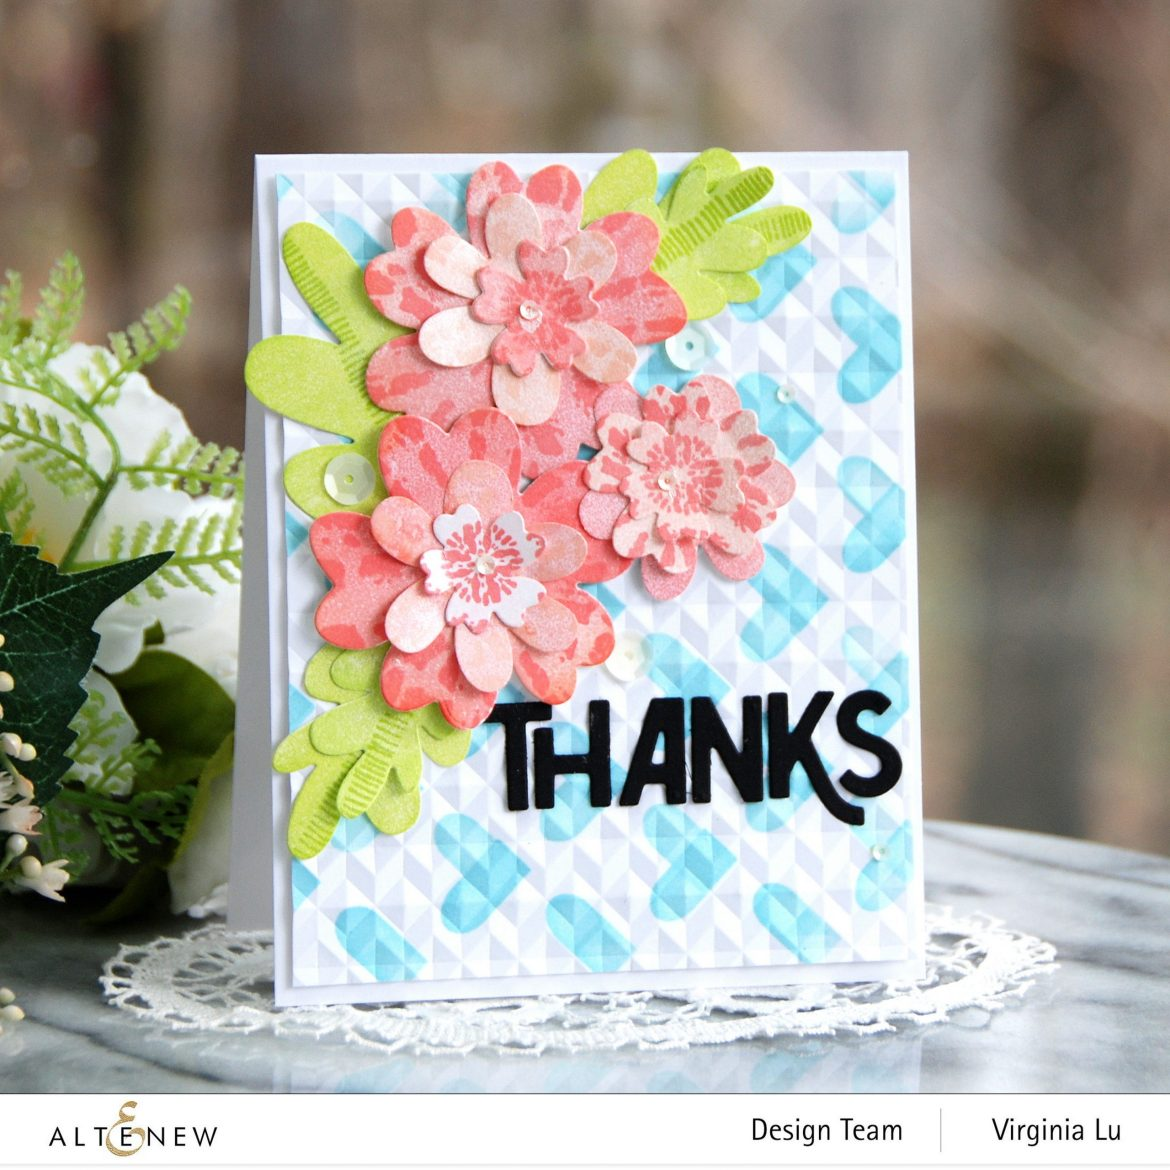 Altenew-May2021Inspiration Challenge-Simple Nesting Flower Layering Die-Color Block Hearts Stencil-angled Mosaic 3D Embossing Folder-Bold Thanks Die Set-Tie Dye Motif Stamp Set